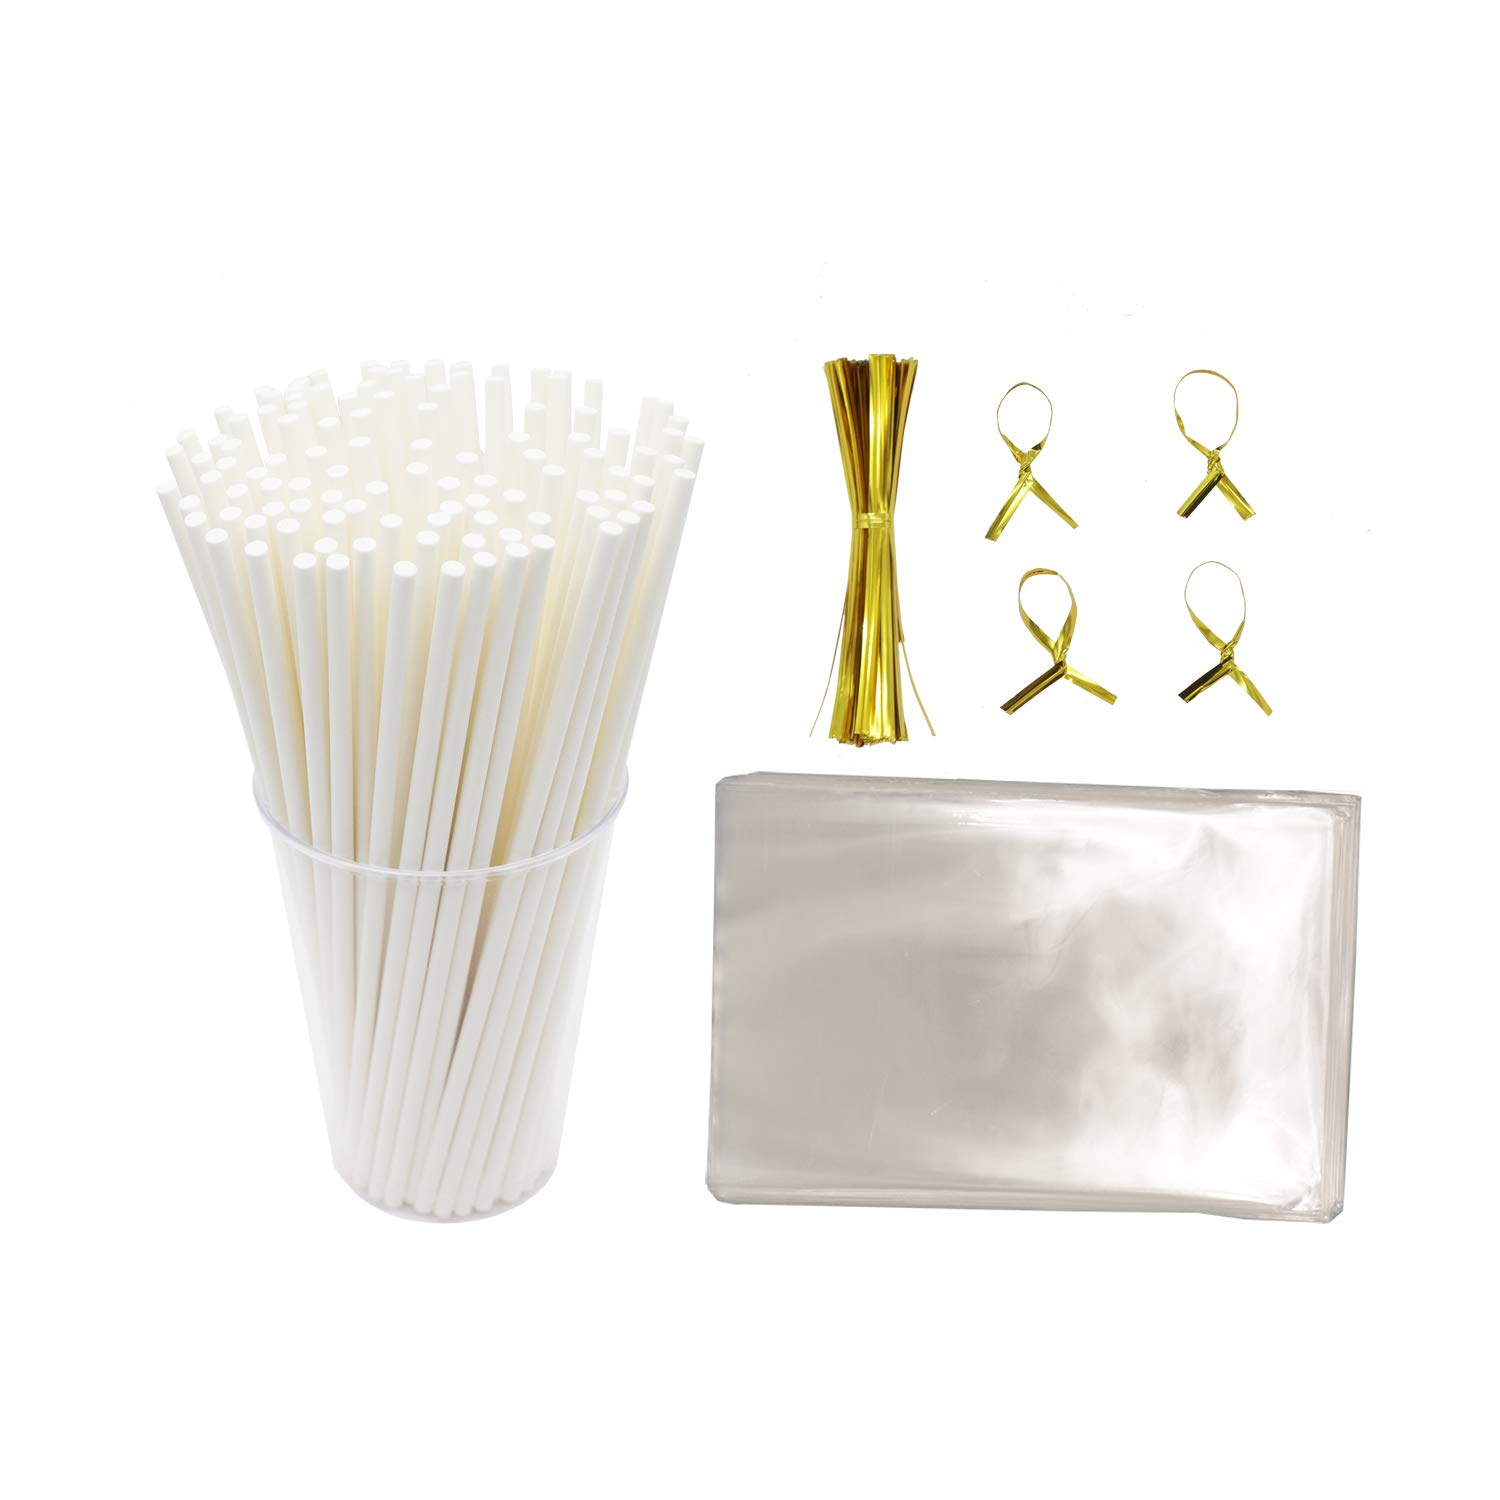 Lollipop wrapping kit including Paper Cookie Sticks (Oven Use 1000pcs) Clear Treat Bags (1000pcs) and Golden Metallic Twist Tie (1000pcs) for cookie candy cake pop